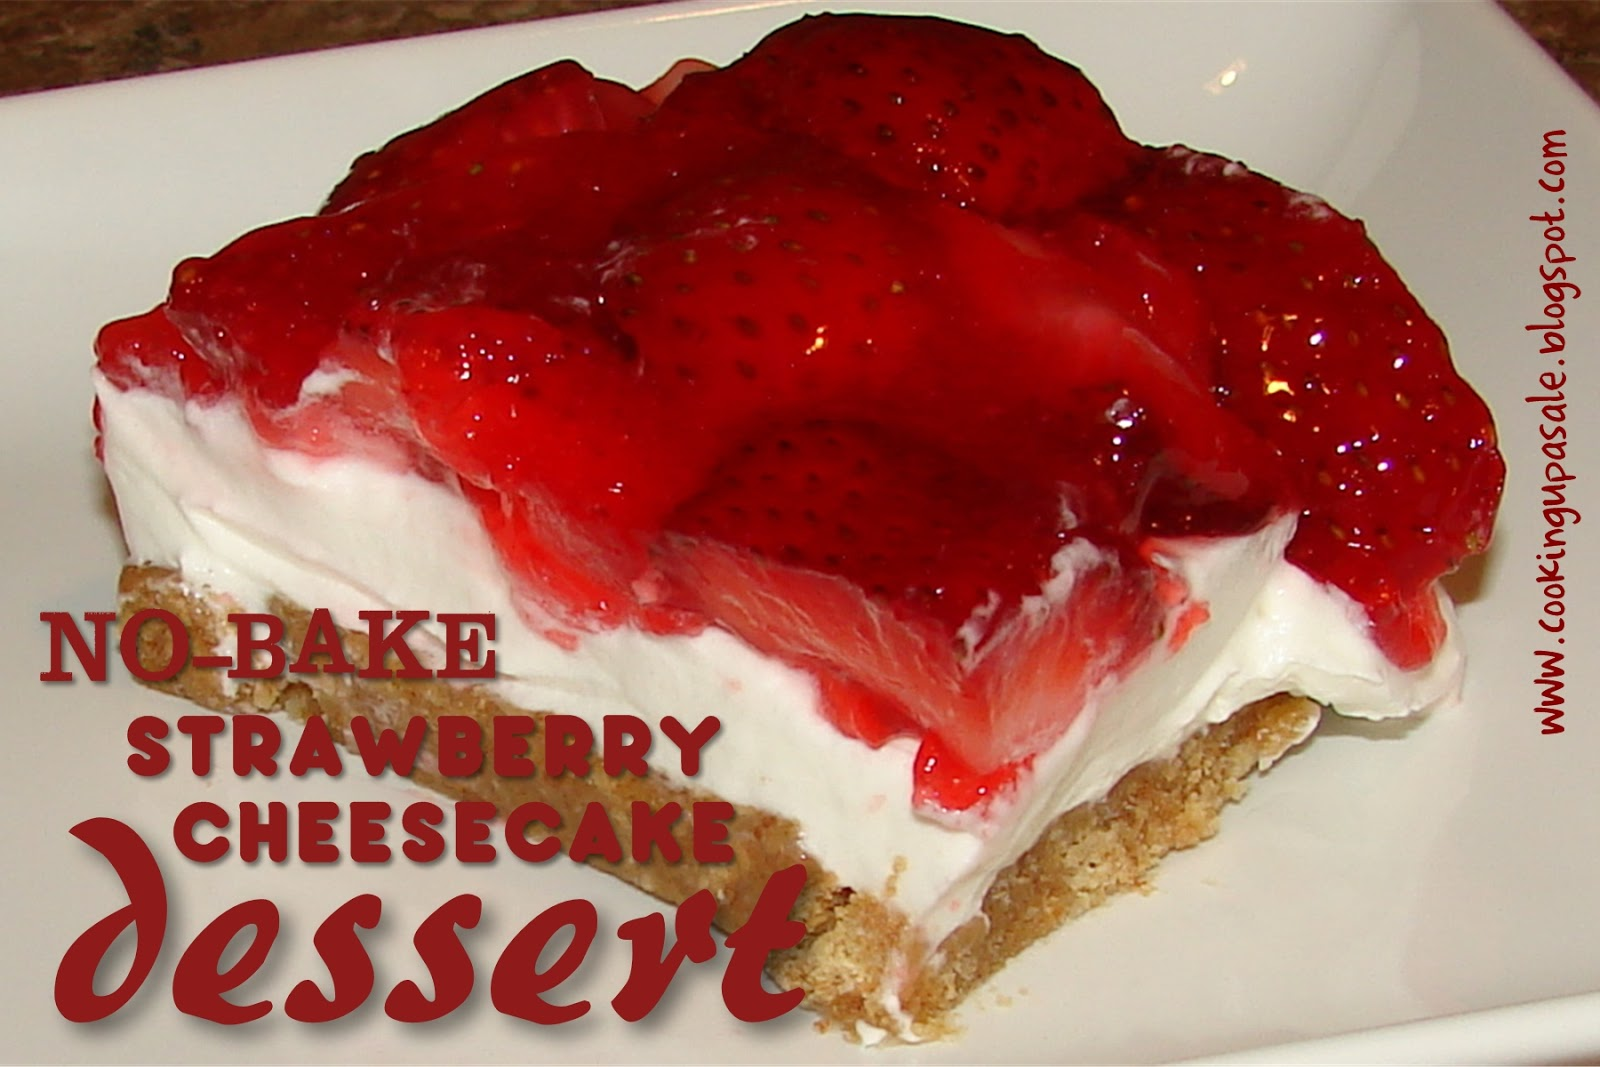 Cooking Up a Sale: No-Bake Strawberry Cheesecake Dessert